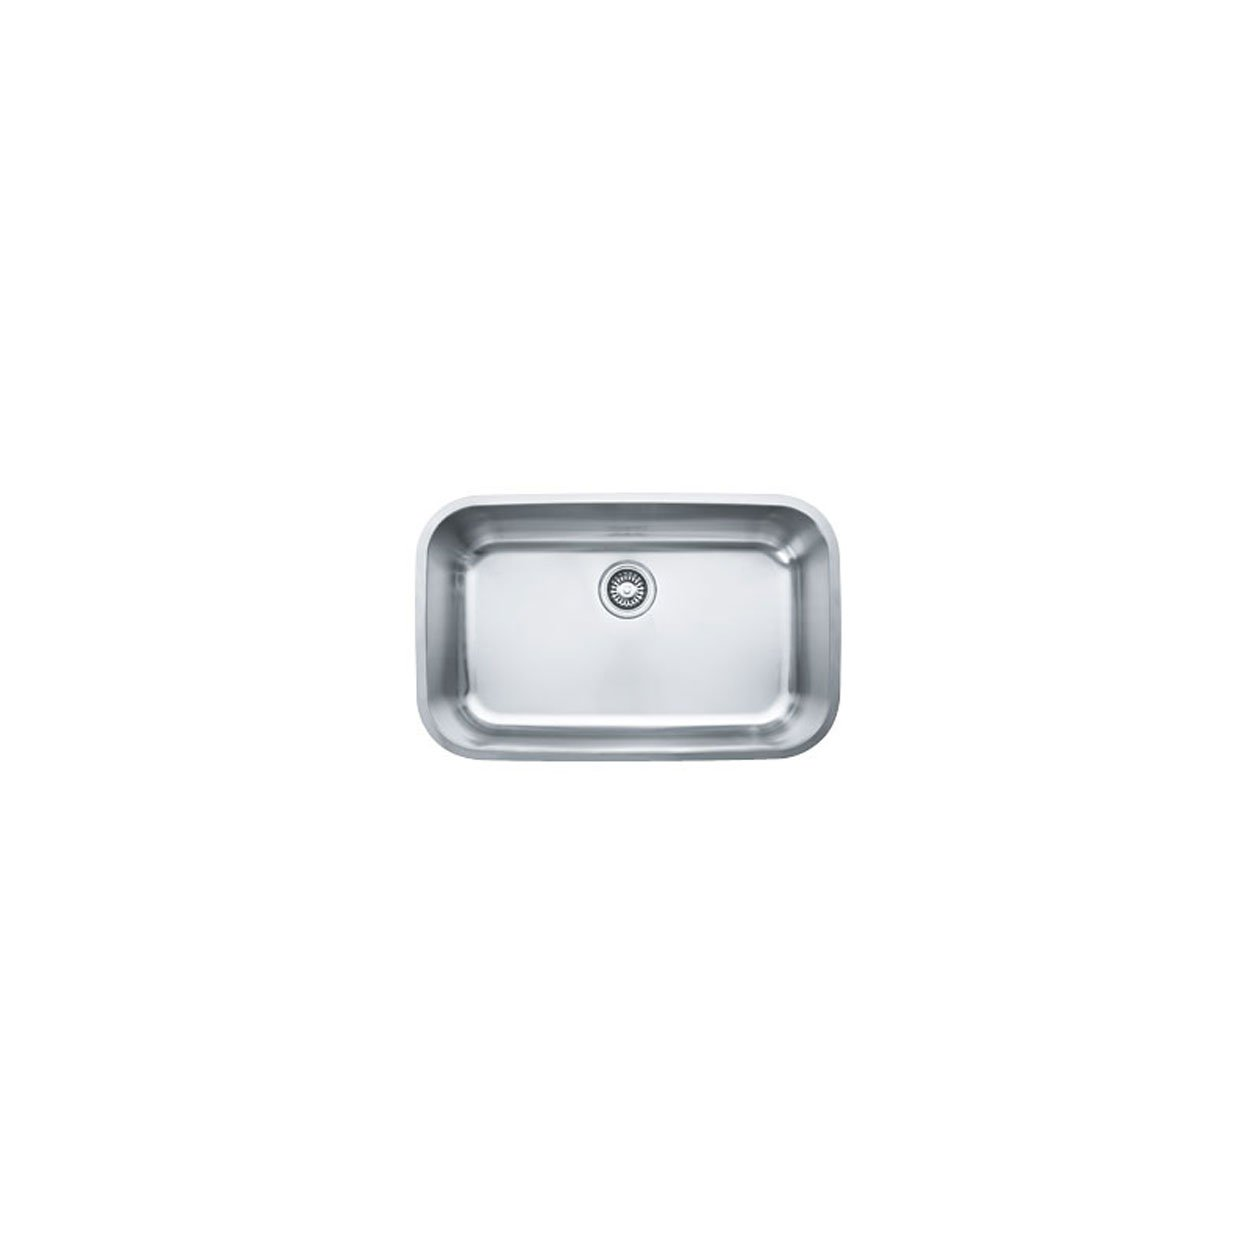 Franke Bar Sink : ... .comAmazon.com: Franke - Kitchen Sinks / Kitchen & Bar Sinks: Kitchen